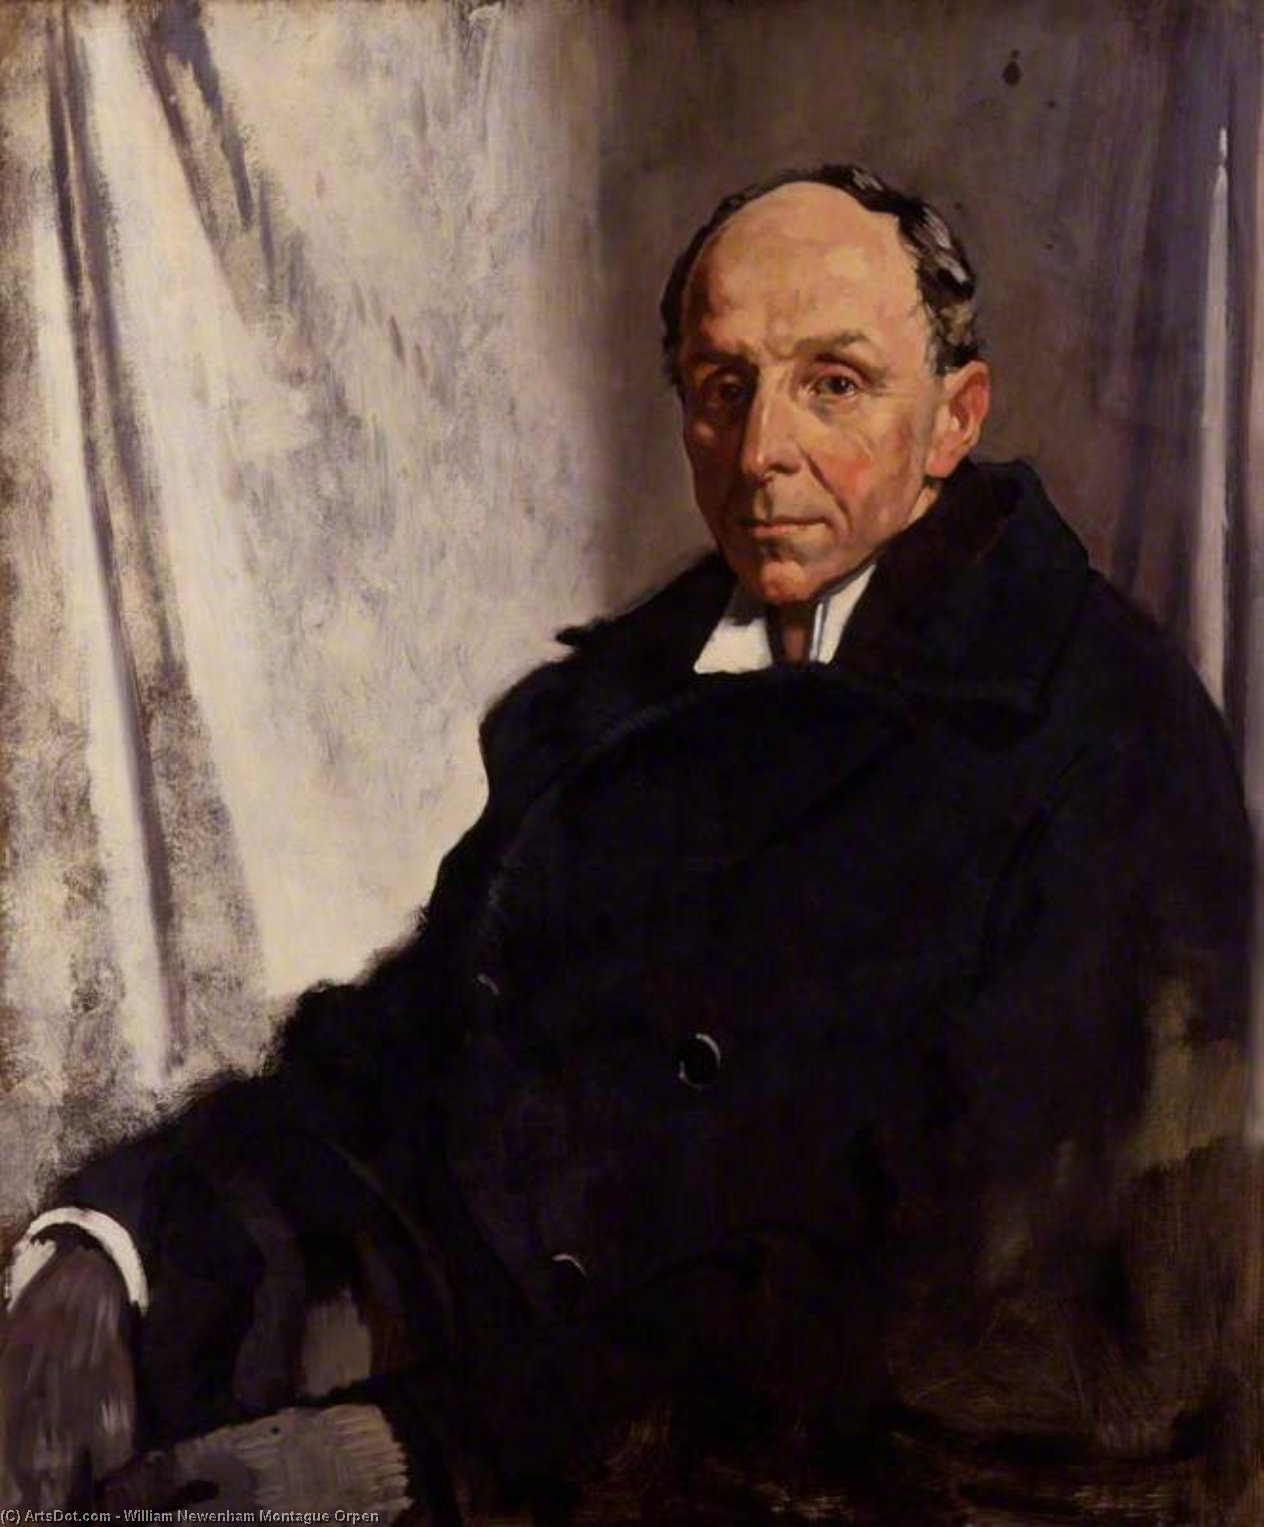 edgar algernon robert Gascoyne-cecil , 1st Vizconde Cecilio de chelwood de William Newenham Montague Orpen (1878-1931, Ireland)